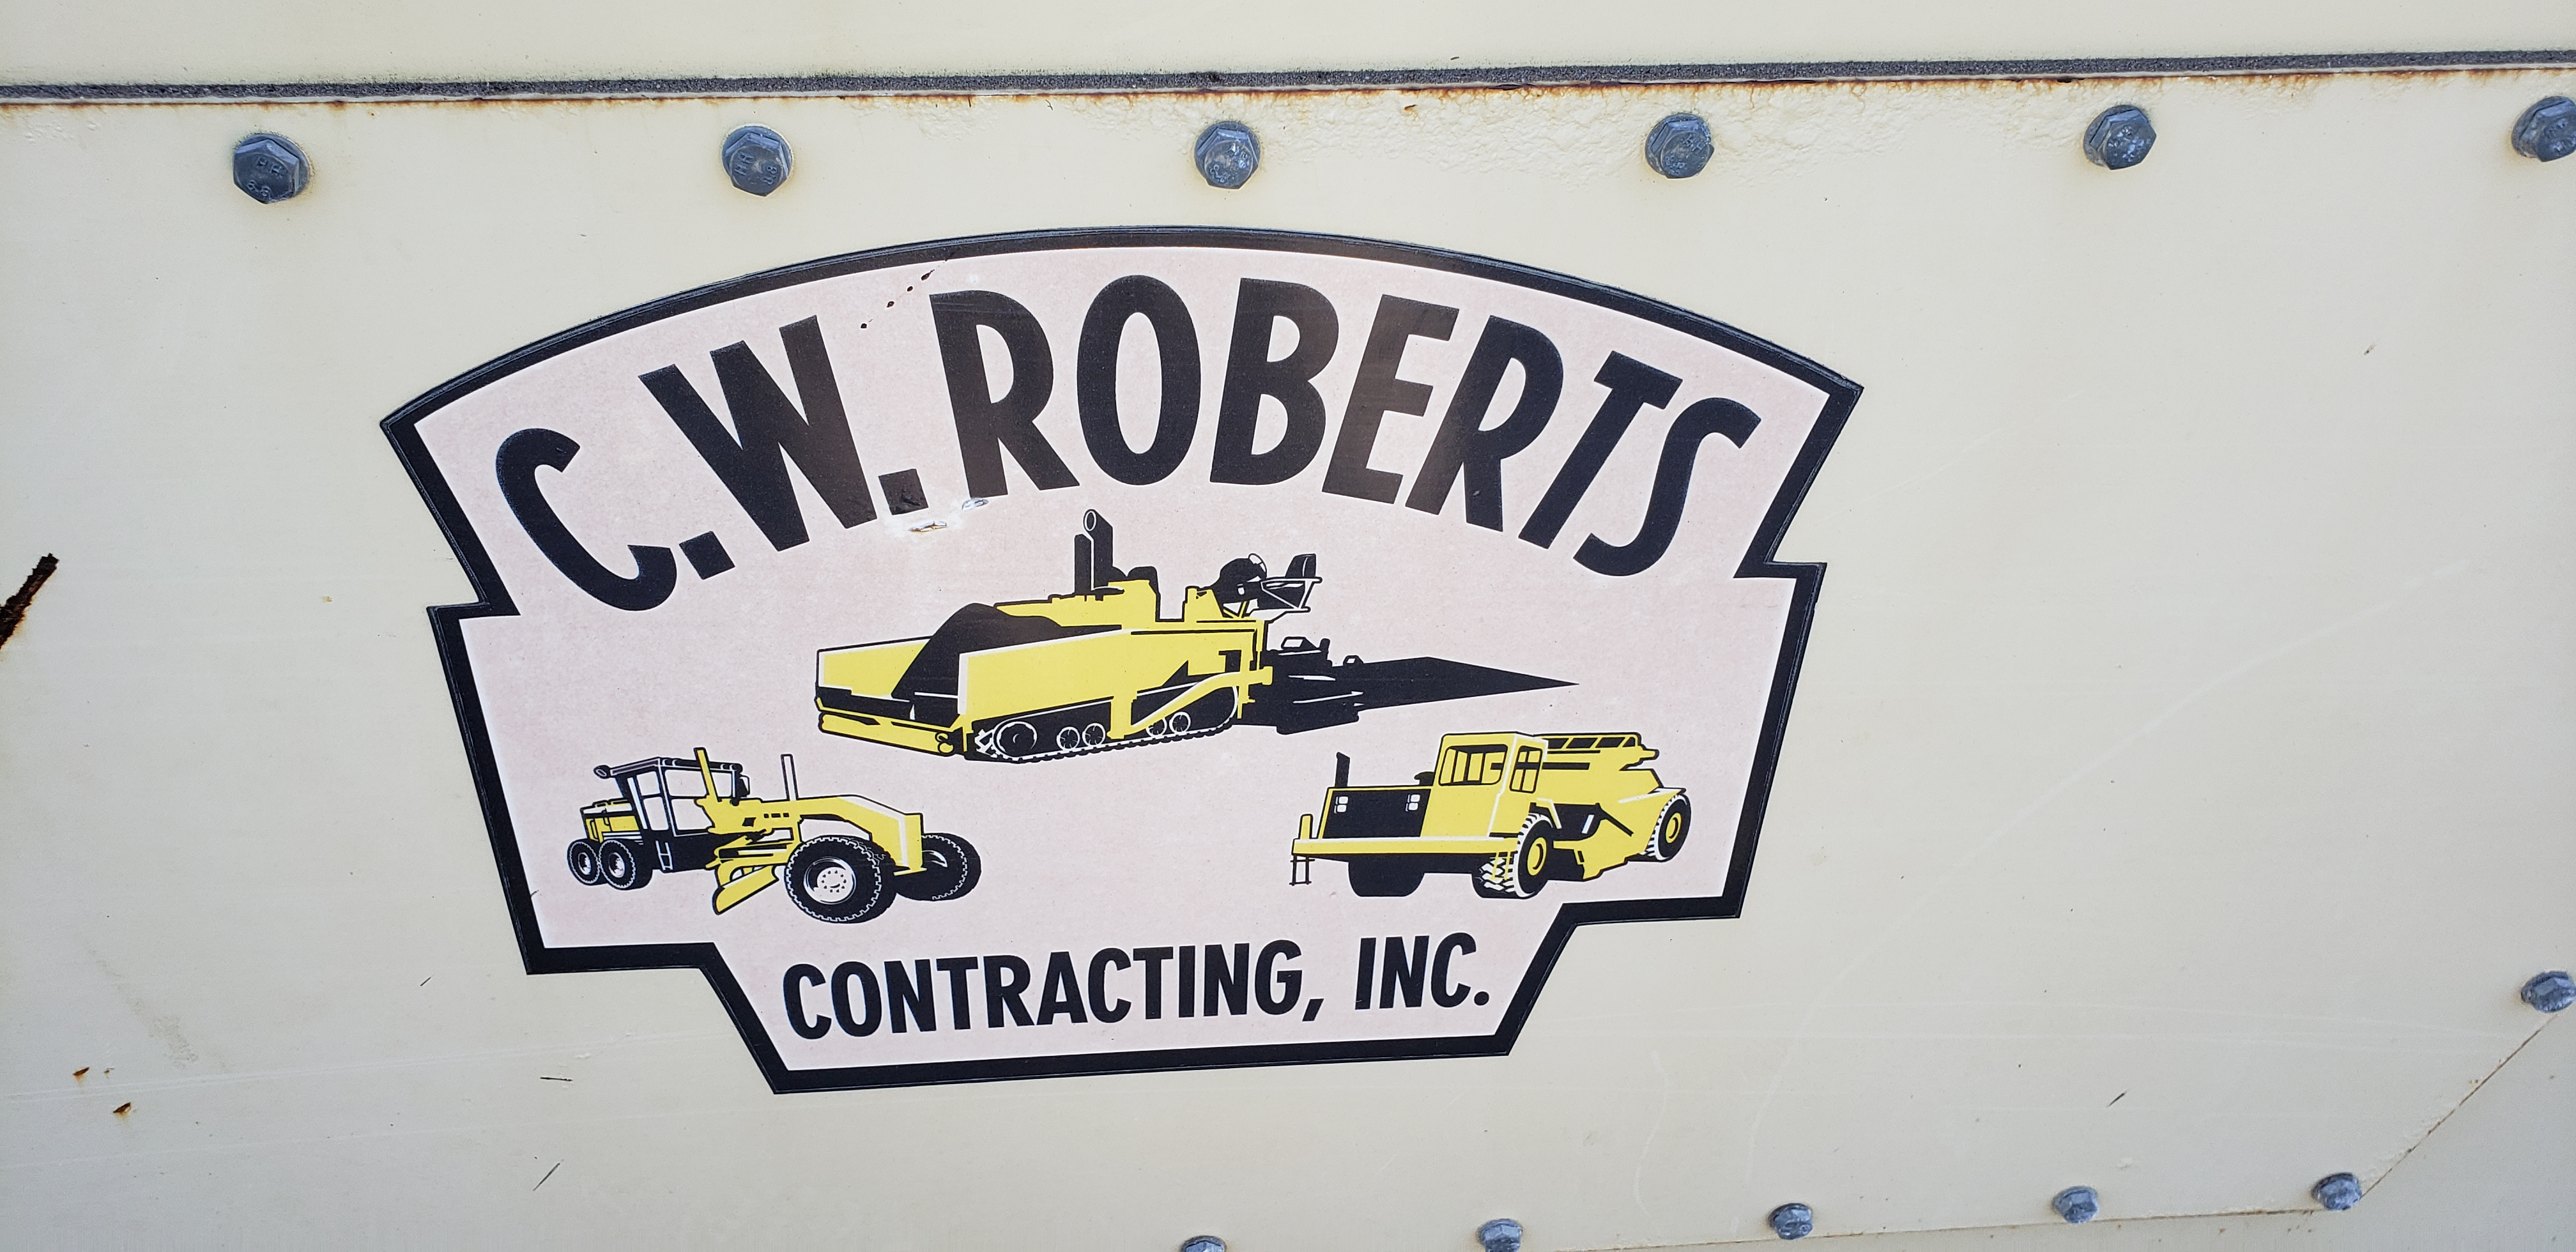 09-24-2019 CW Roberts - New Pavement